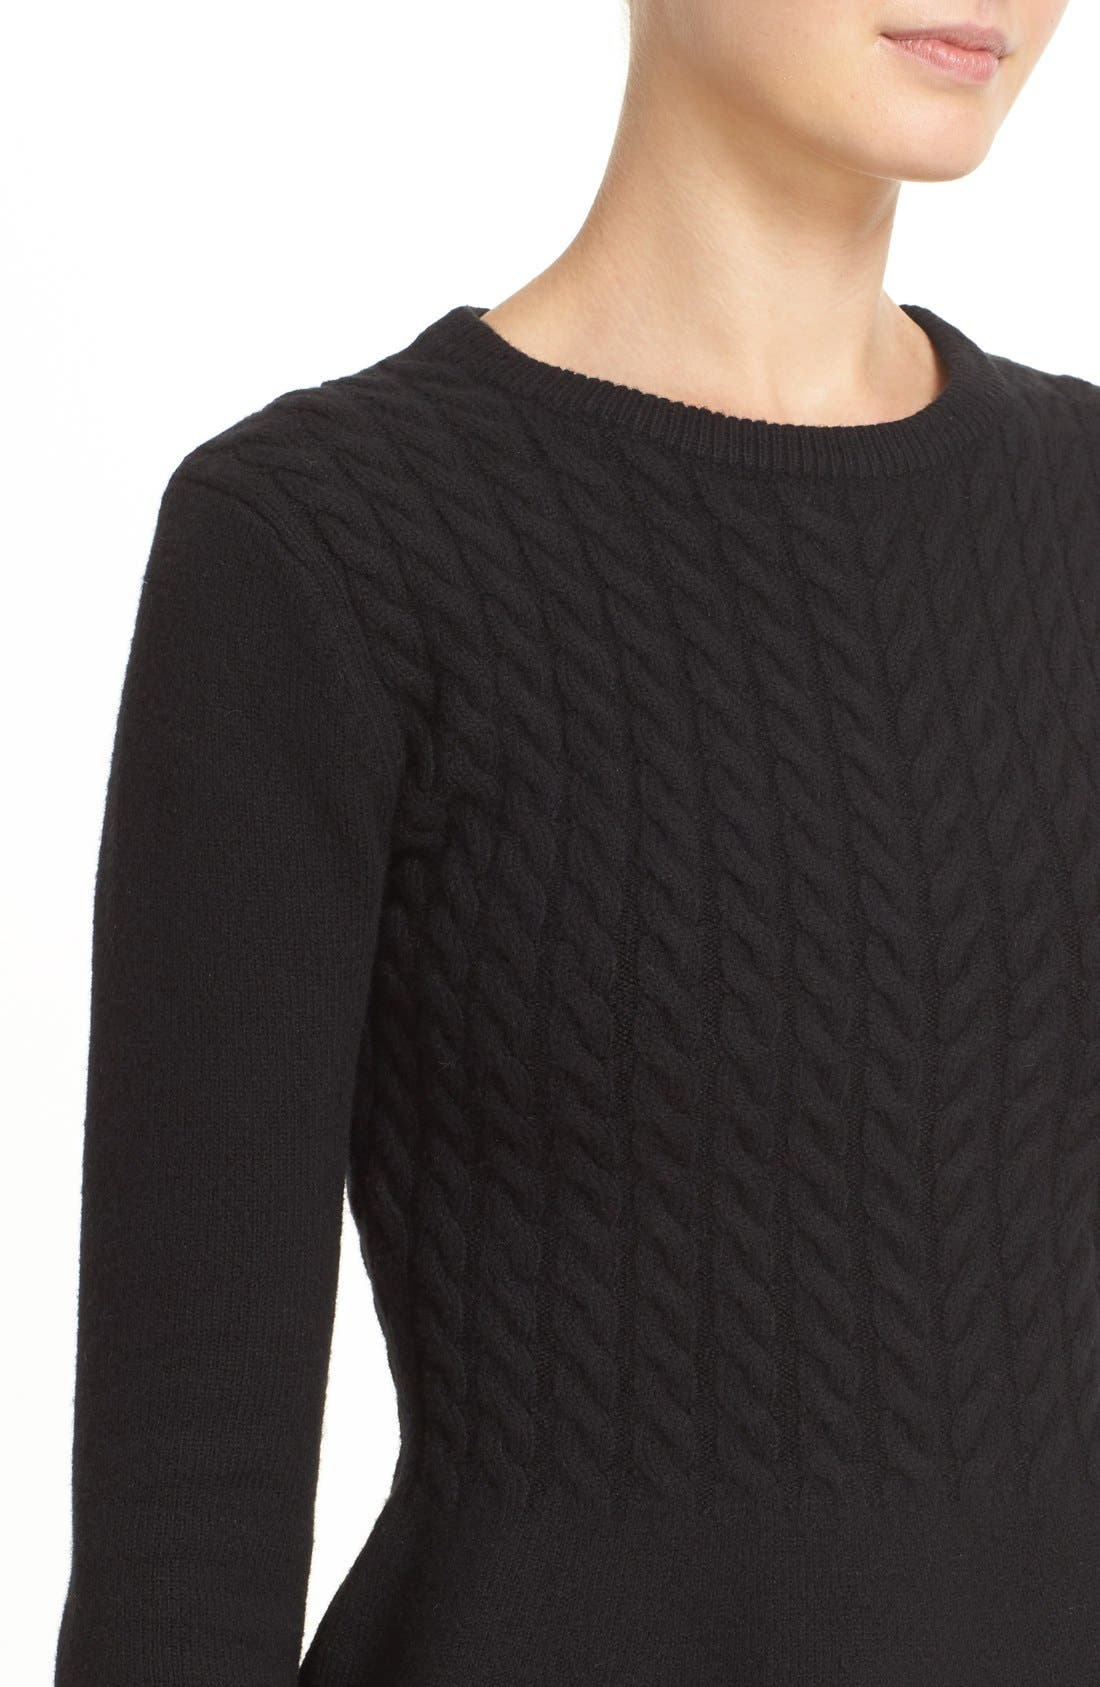 TED BAKER LONDON,                             'Mereda' Cable Knit Peplum Sweater,                             Alternate thumbnail 4, color,                             001